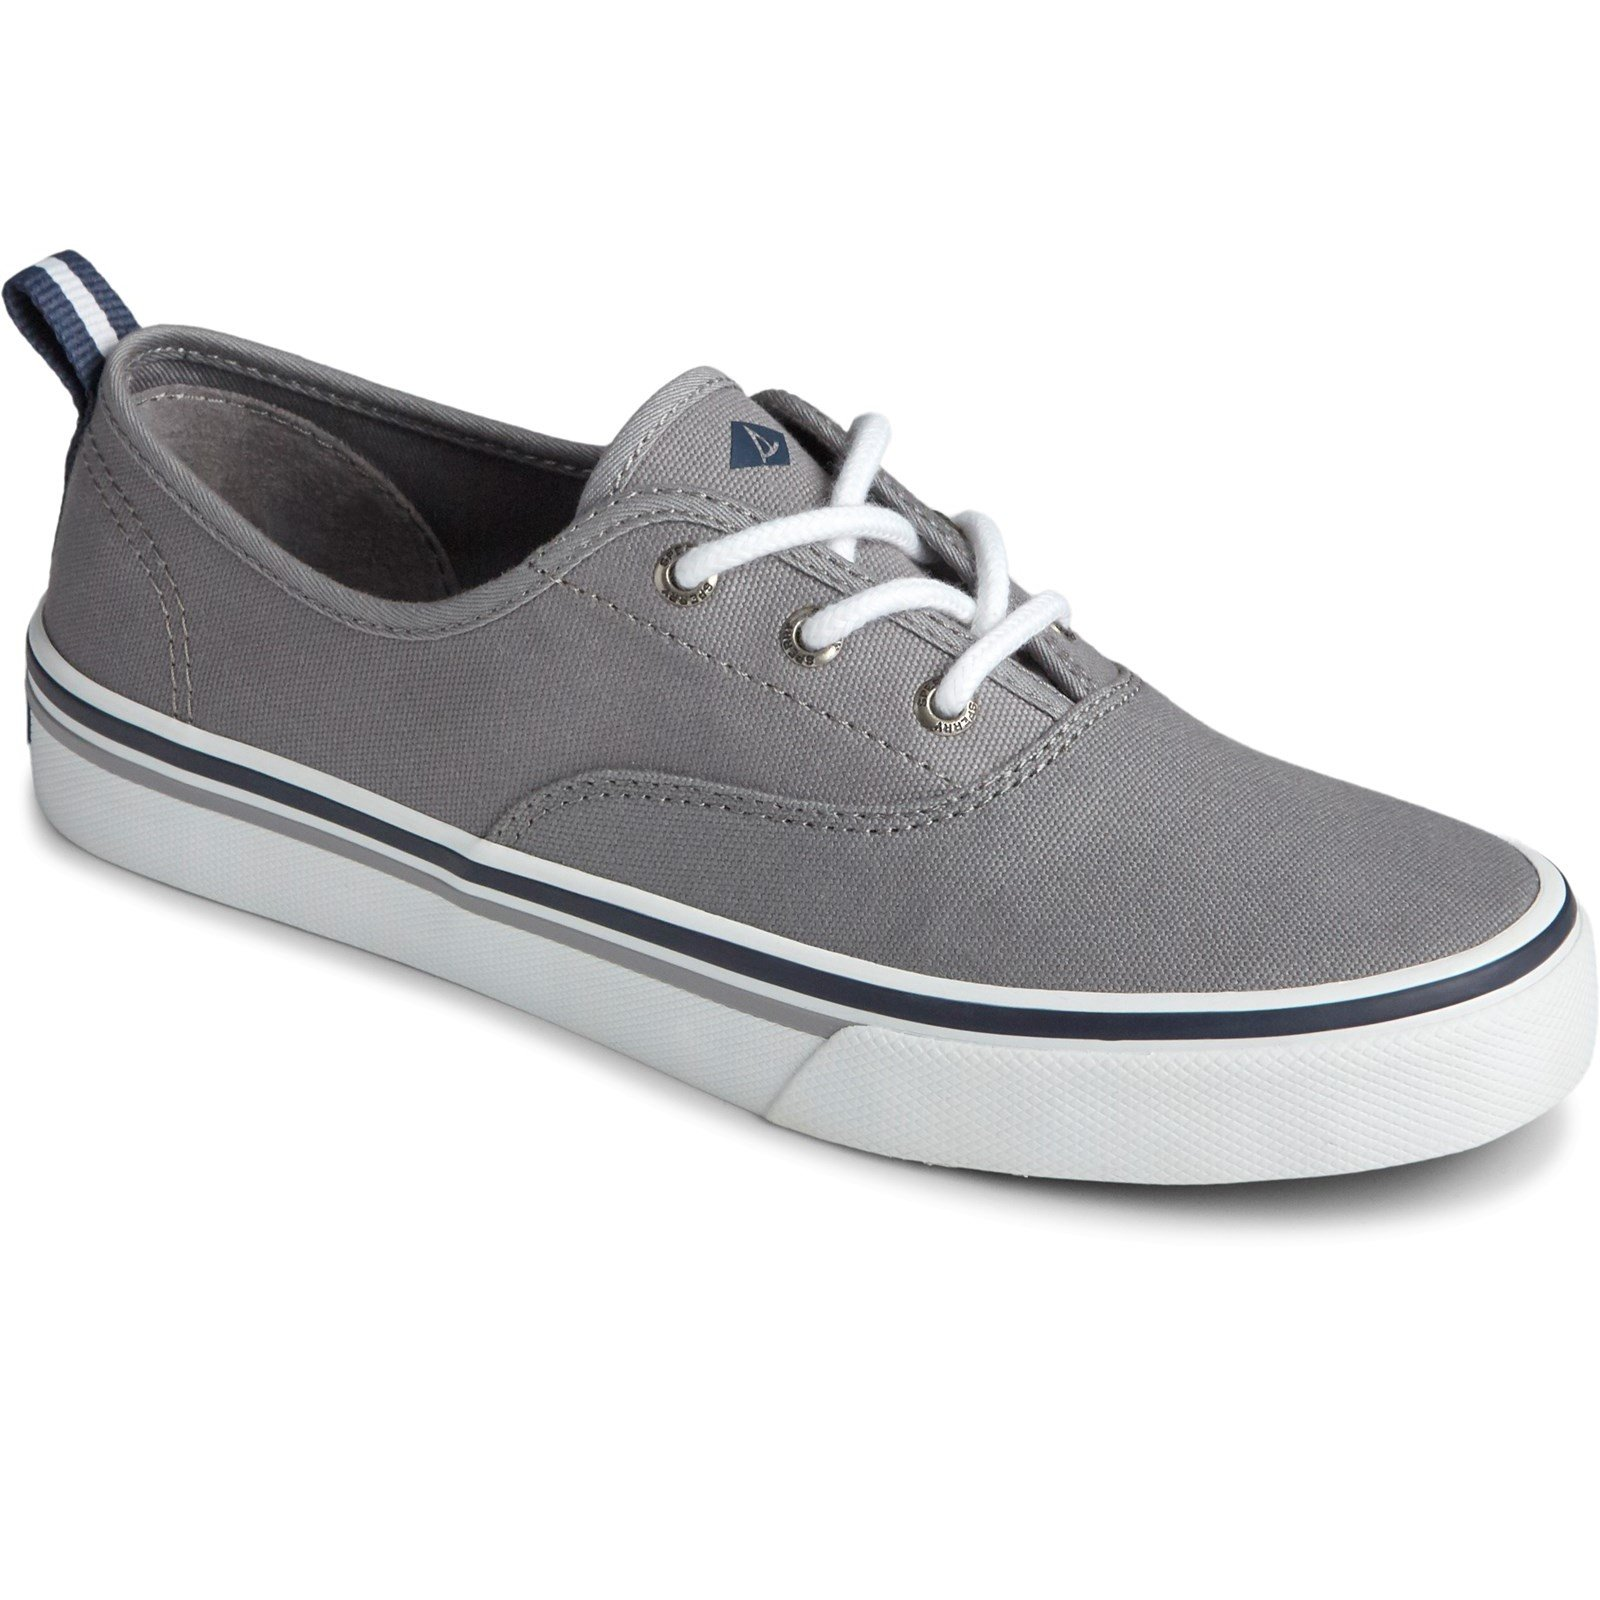 Sperry Women's Crest CVO Trainers Various Colours 32936 - Grey 8